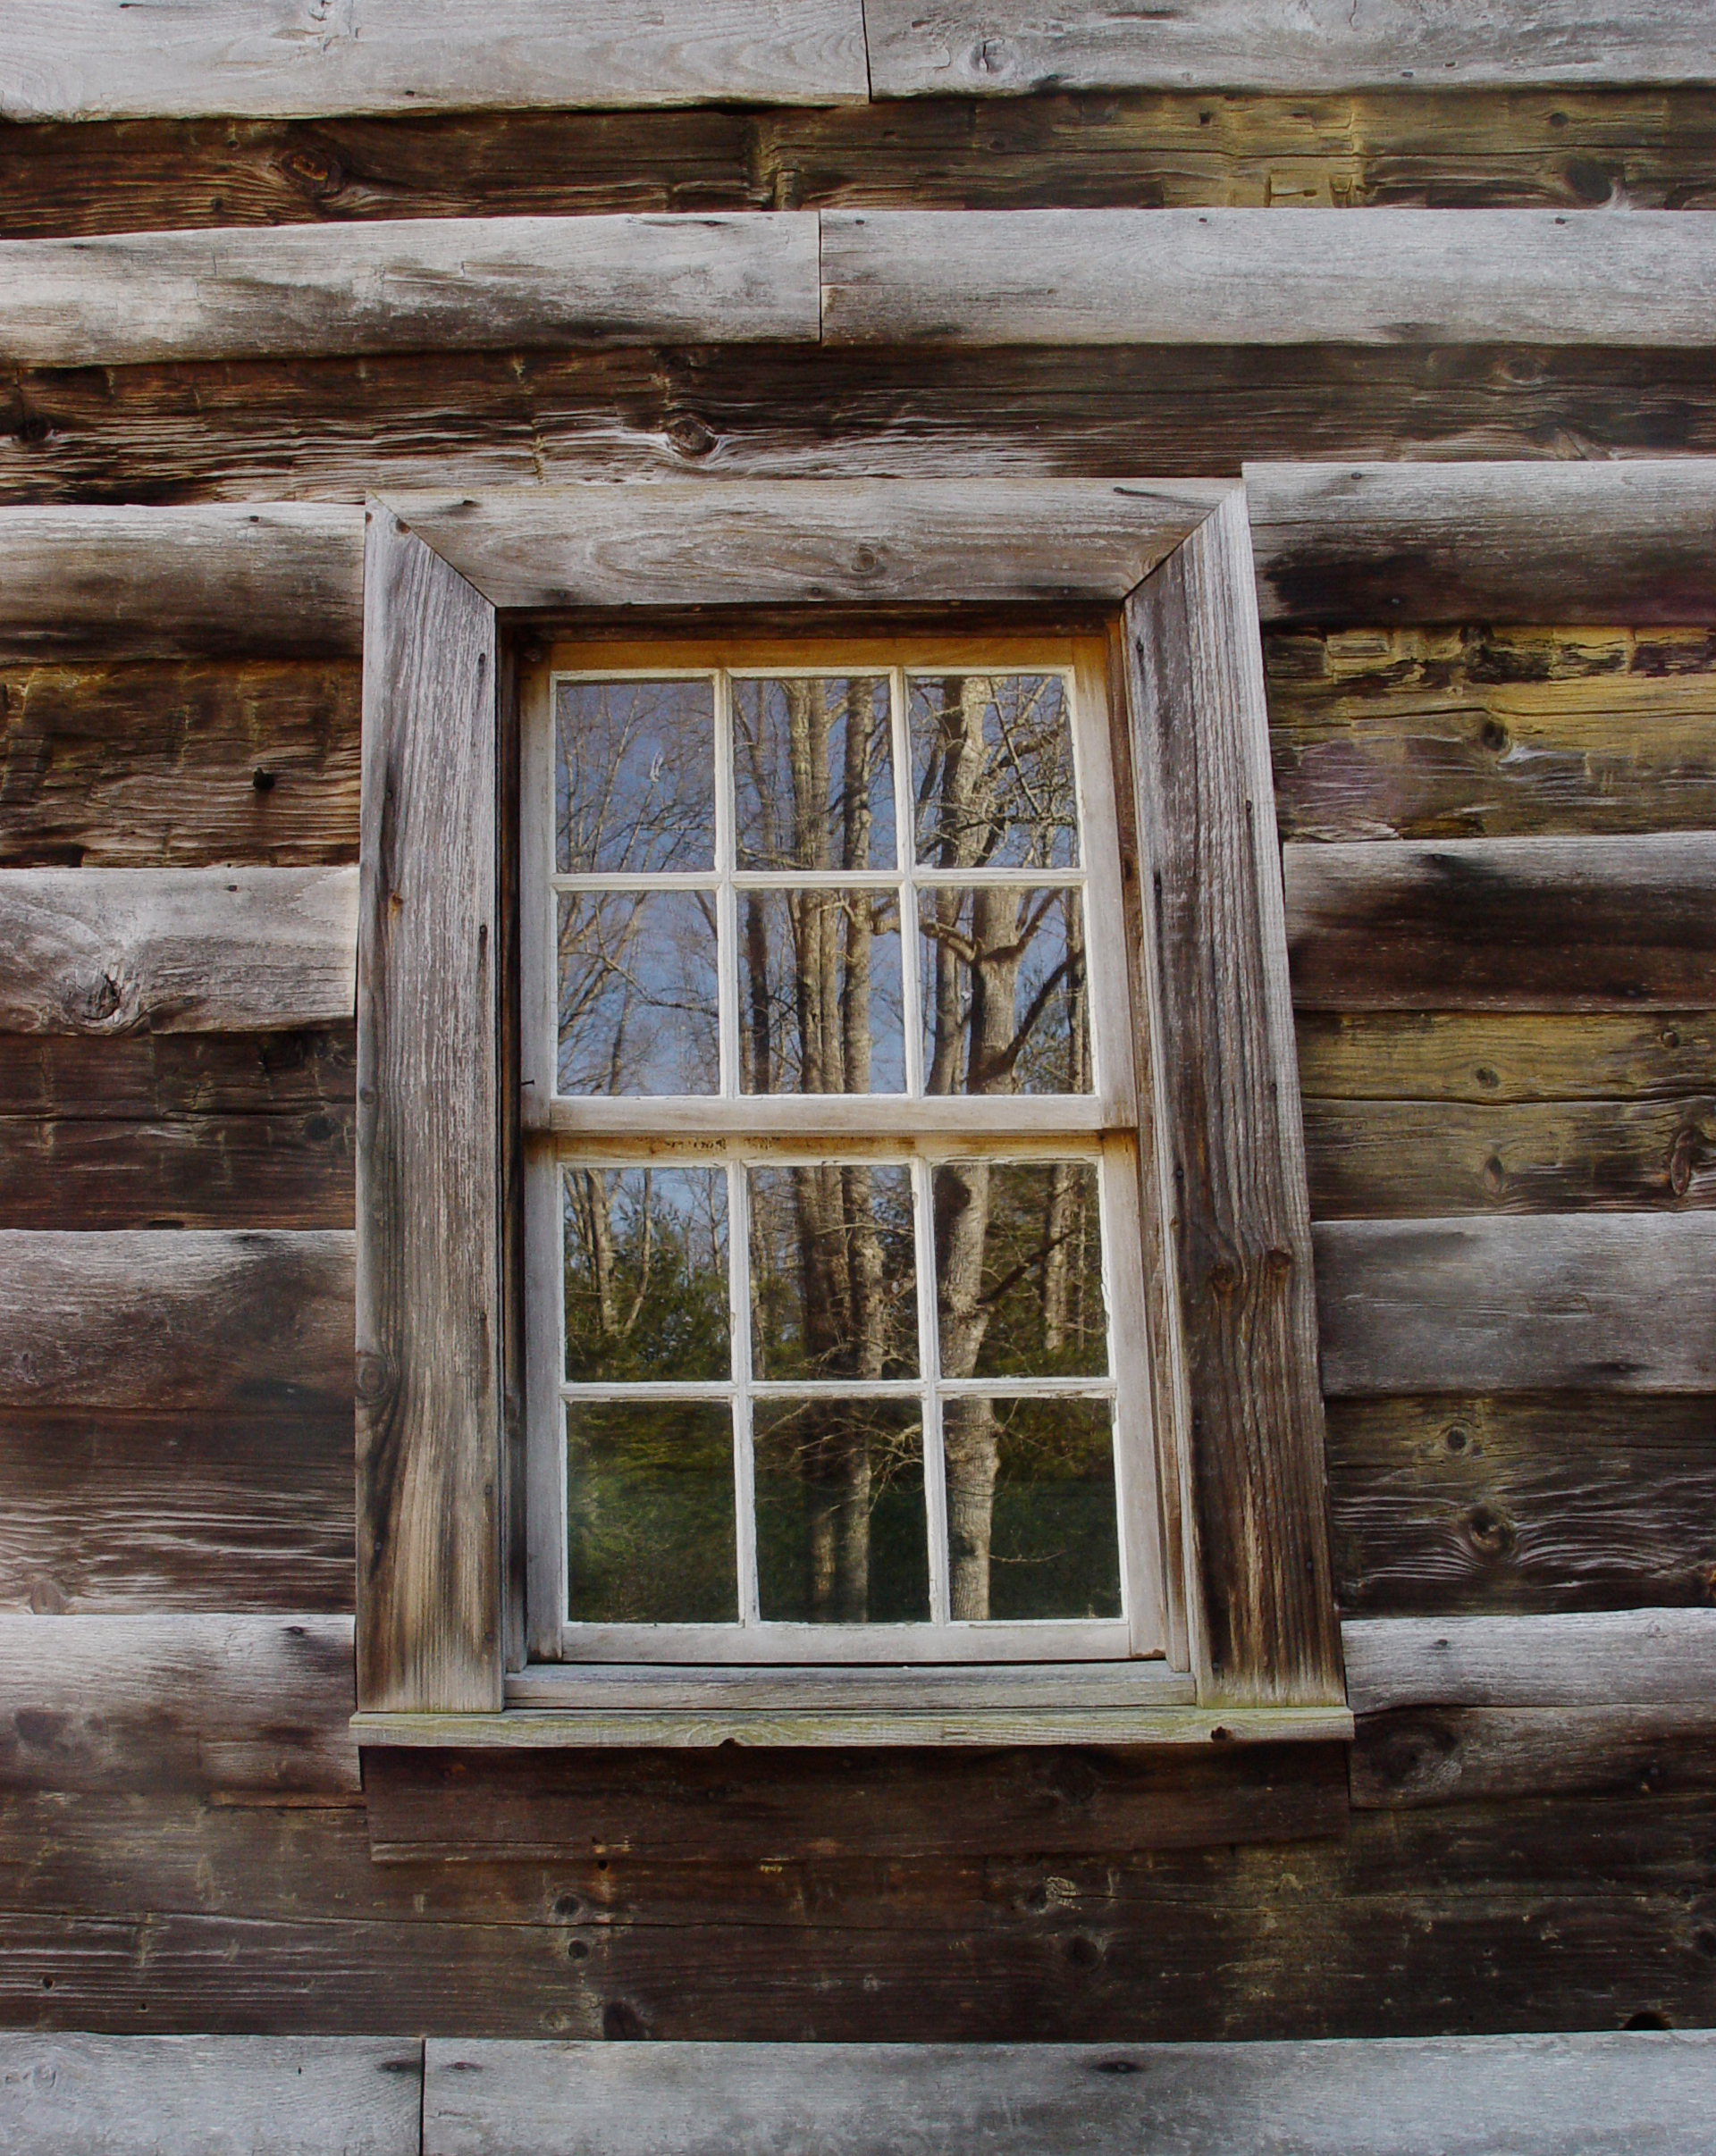 File:Carter-Shields-window,-detail.jpg - Wikimedia Commons